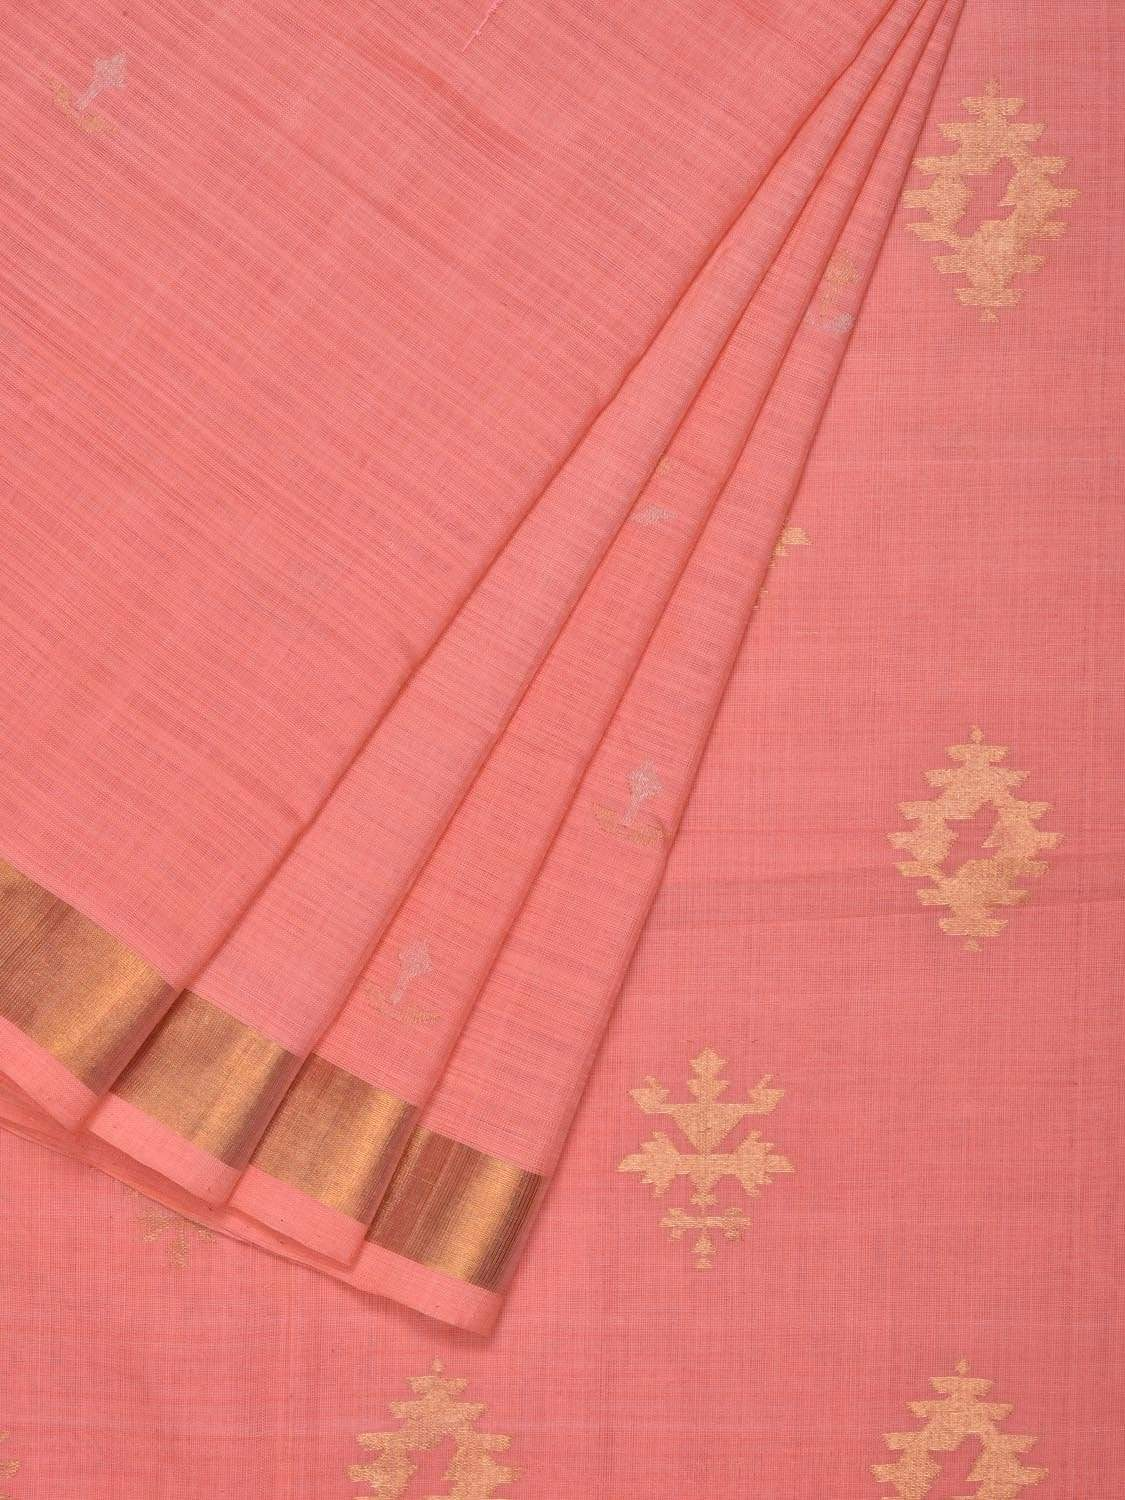 Baby Pink Uppada Cotton Handloom Saree with Assorted Buta Pallu Design u1543